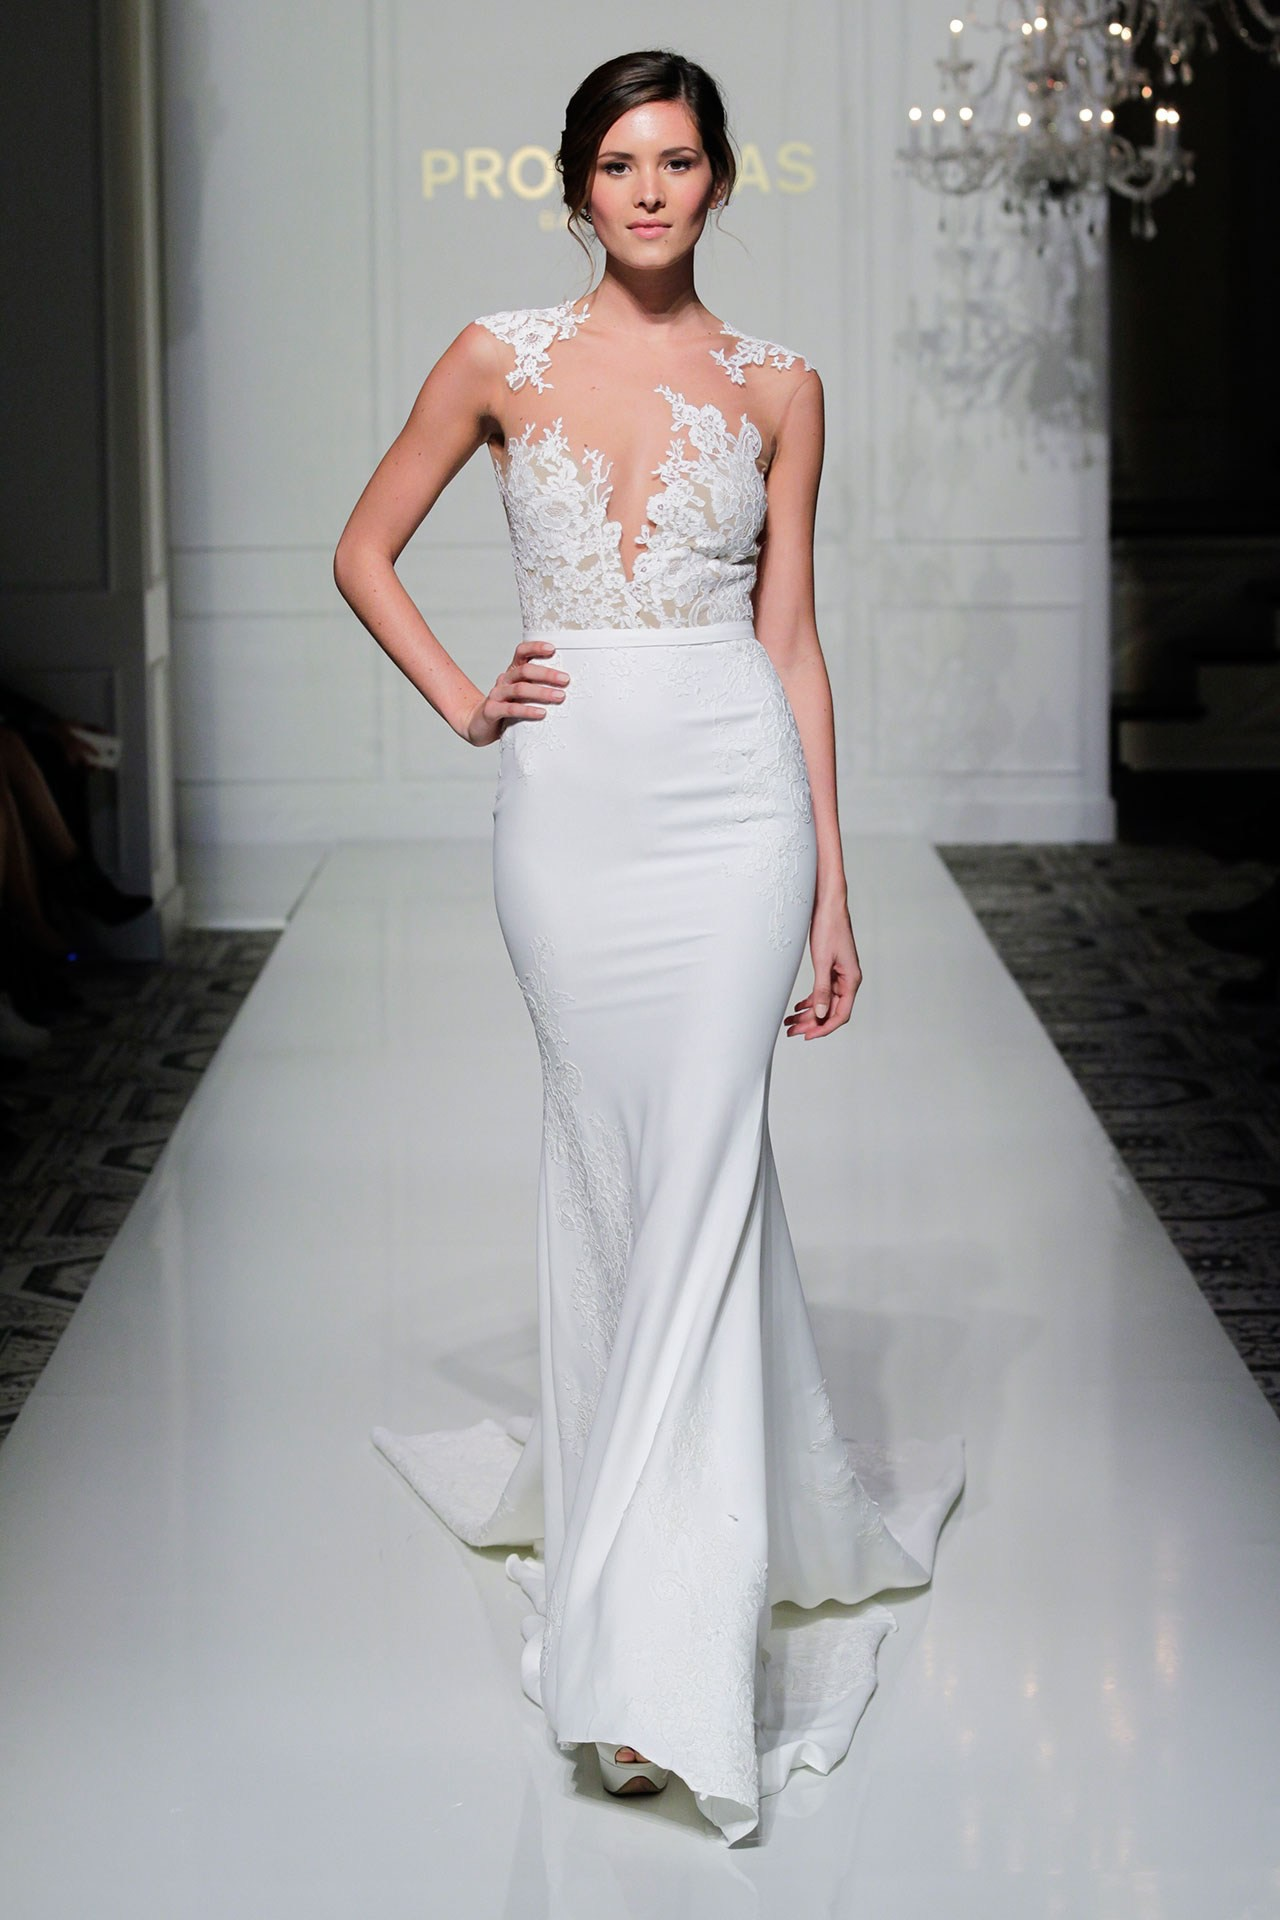 Pronovias Vicenta Inspired Dresses In Need Of